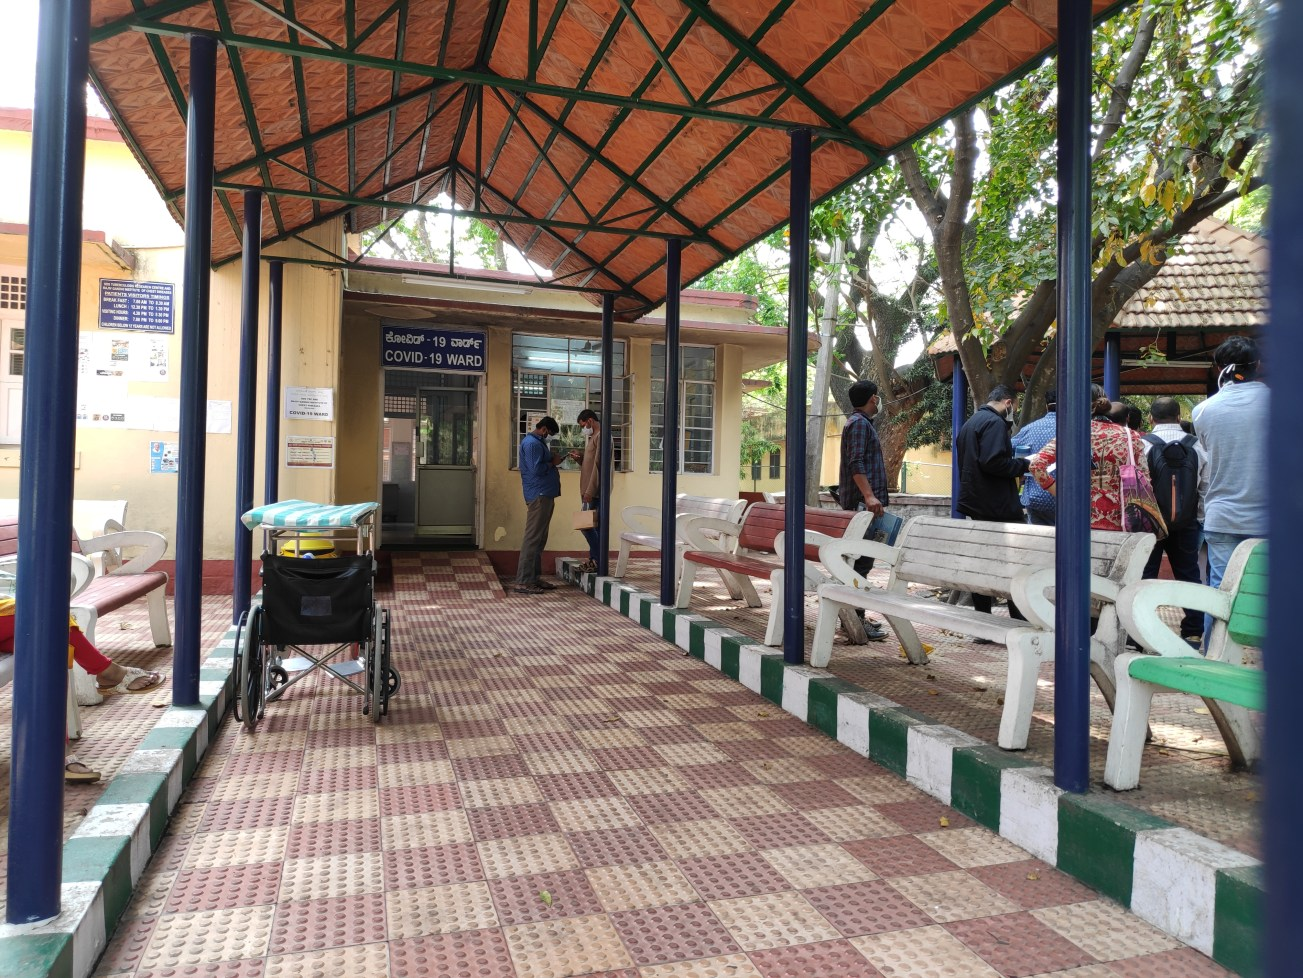 142157361 - bengaluru / bangalore, india - march 4 2020: a hospital ward for testing covid-19 or coronavirus setup in bangalore, india. the infectious disease has over 93,000 confirmed cases worldwide, with india has reporting 28 confirmed coronavirus cases. COVID-19 case count concept. Image credit: Ajay Bhaskar / 123rf. Critical COVID-19 concept.